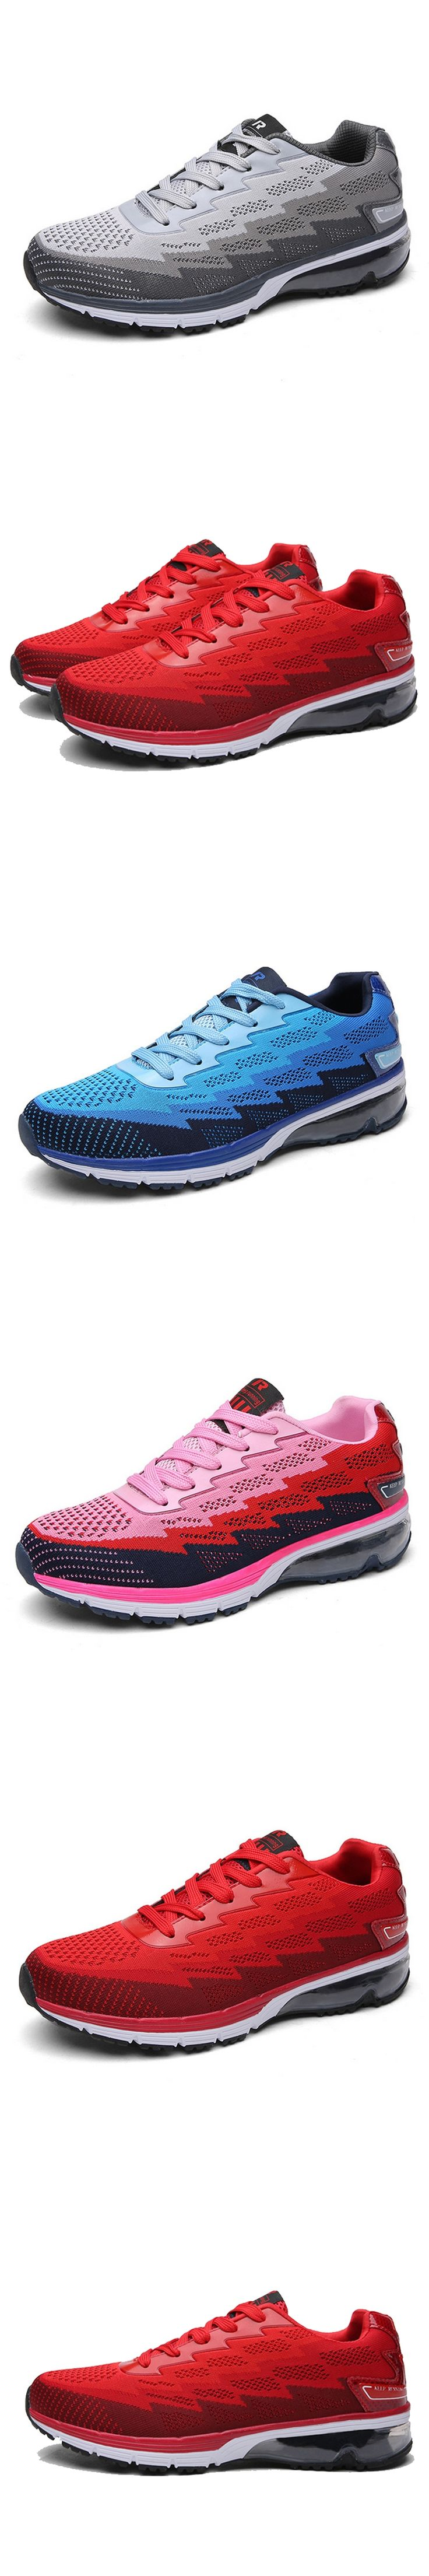 2017 Lover Sports Running Shoes Men and Women Breathable Shoes Male Outdoor Trainer Shoes Walking Sneakers Jogging Shoes 8722